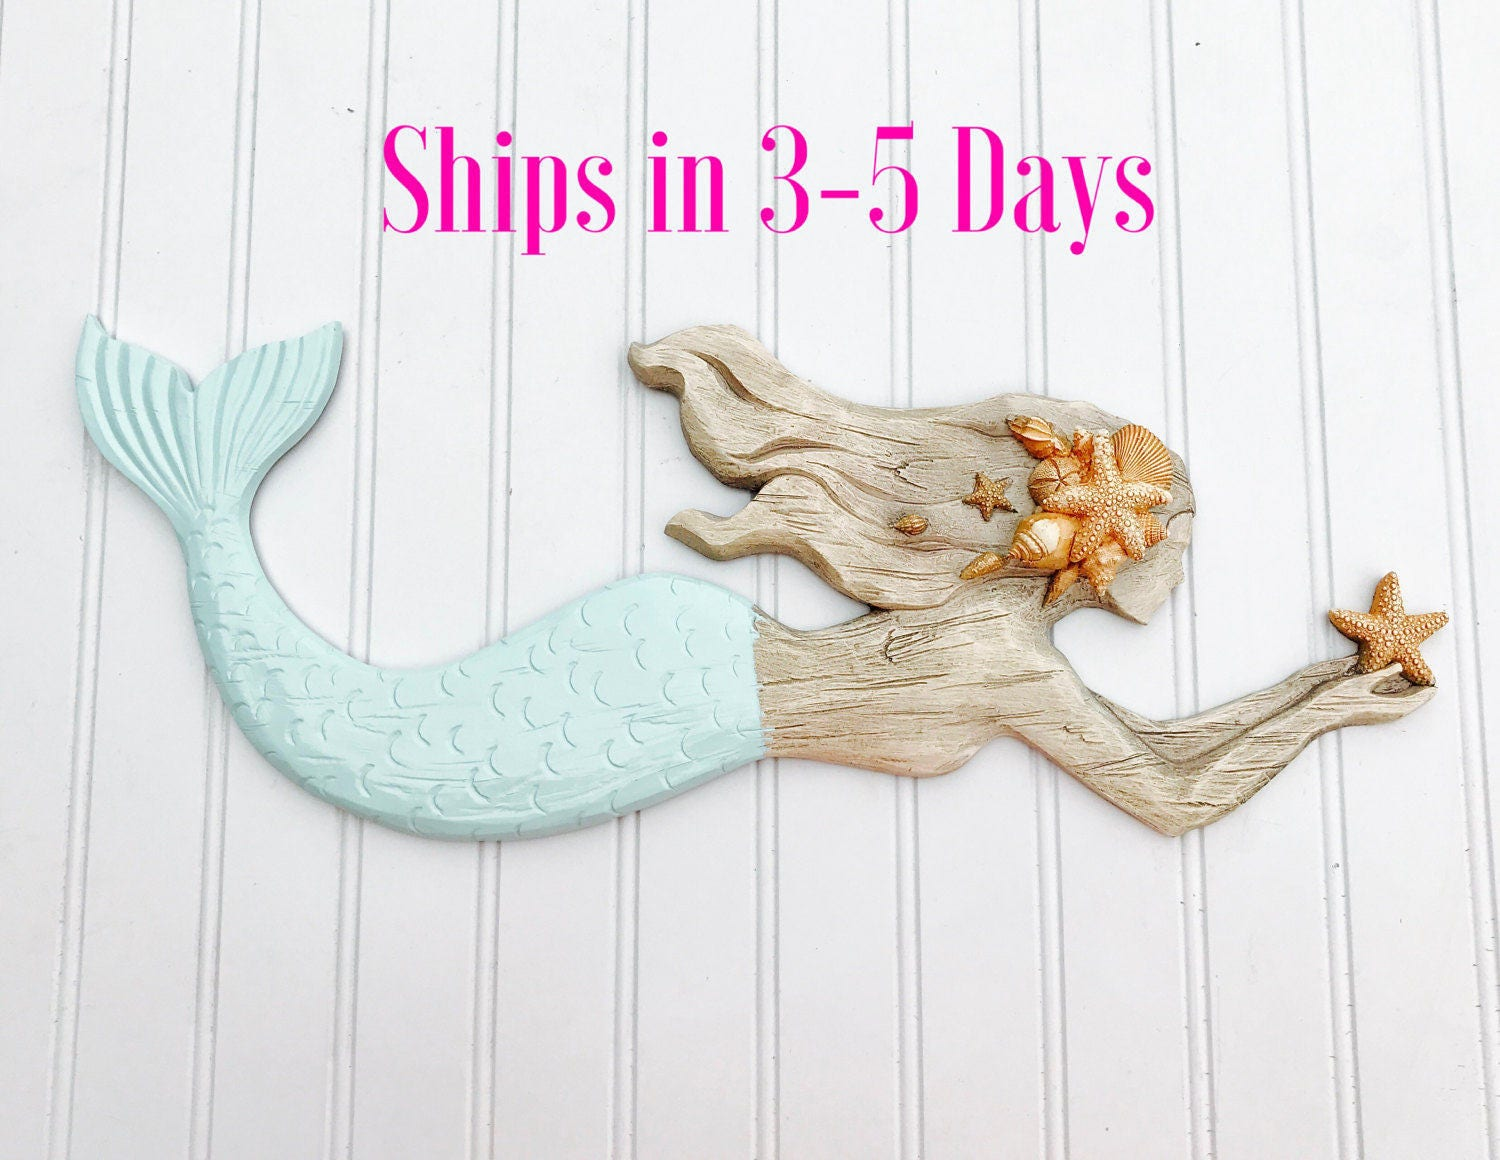 Mermaid sign mermaid decor bathroom decor bedroom decor - Mermaid decor bathroom ...